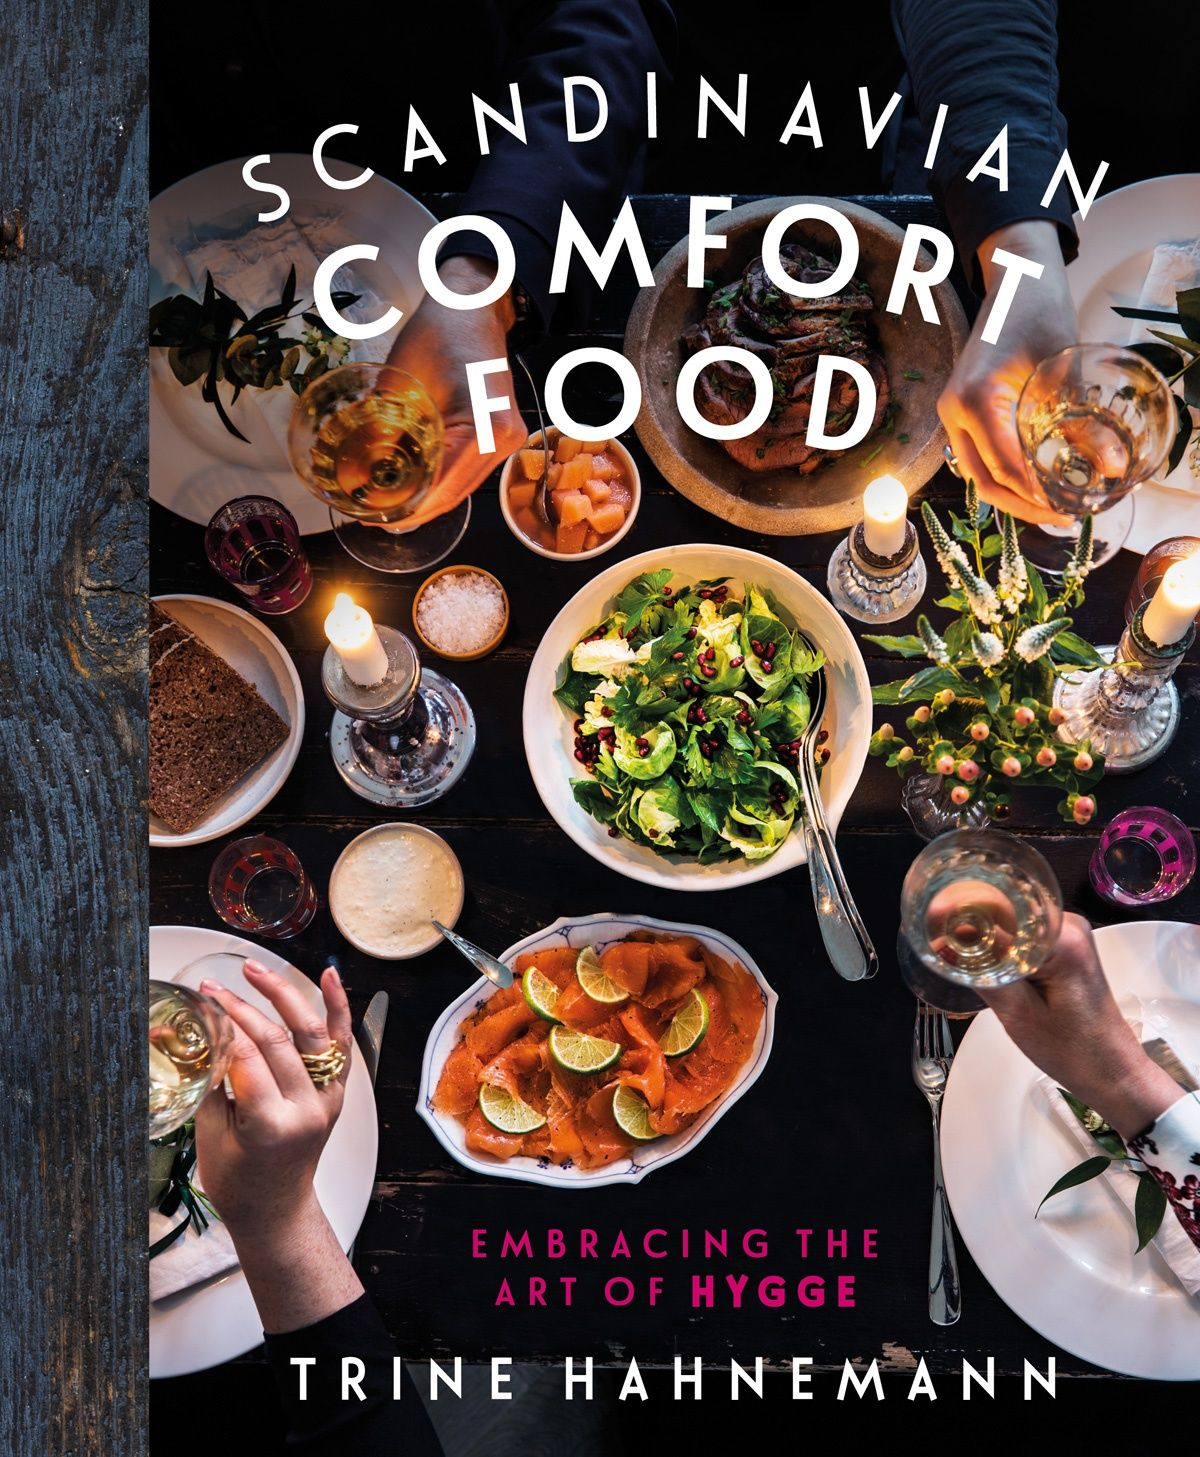 Book cover of Scandinavian Comfort Food by Trine Hahnemann. There have been more books this year on 'hygge' - that Danish concept of fireside cosiness, relaxed amiability, warm, informal gatherings and the cocooning comfort of hearth and home - than I can shake a stick at. But before there was the hype, there was the Queen of Hygge, Trine Hahnemann, she who first introduced the term to us, and her new book, Scandinavian Comfort Food, show us how to celebrate the art of hygge in our own homes.